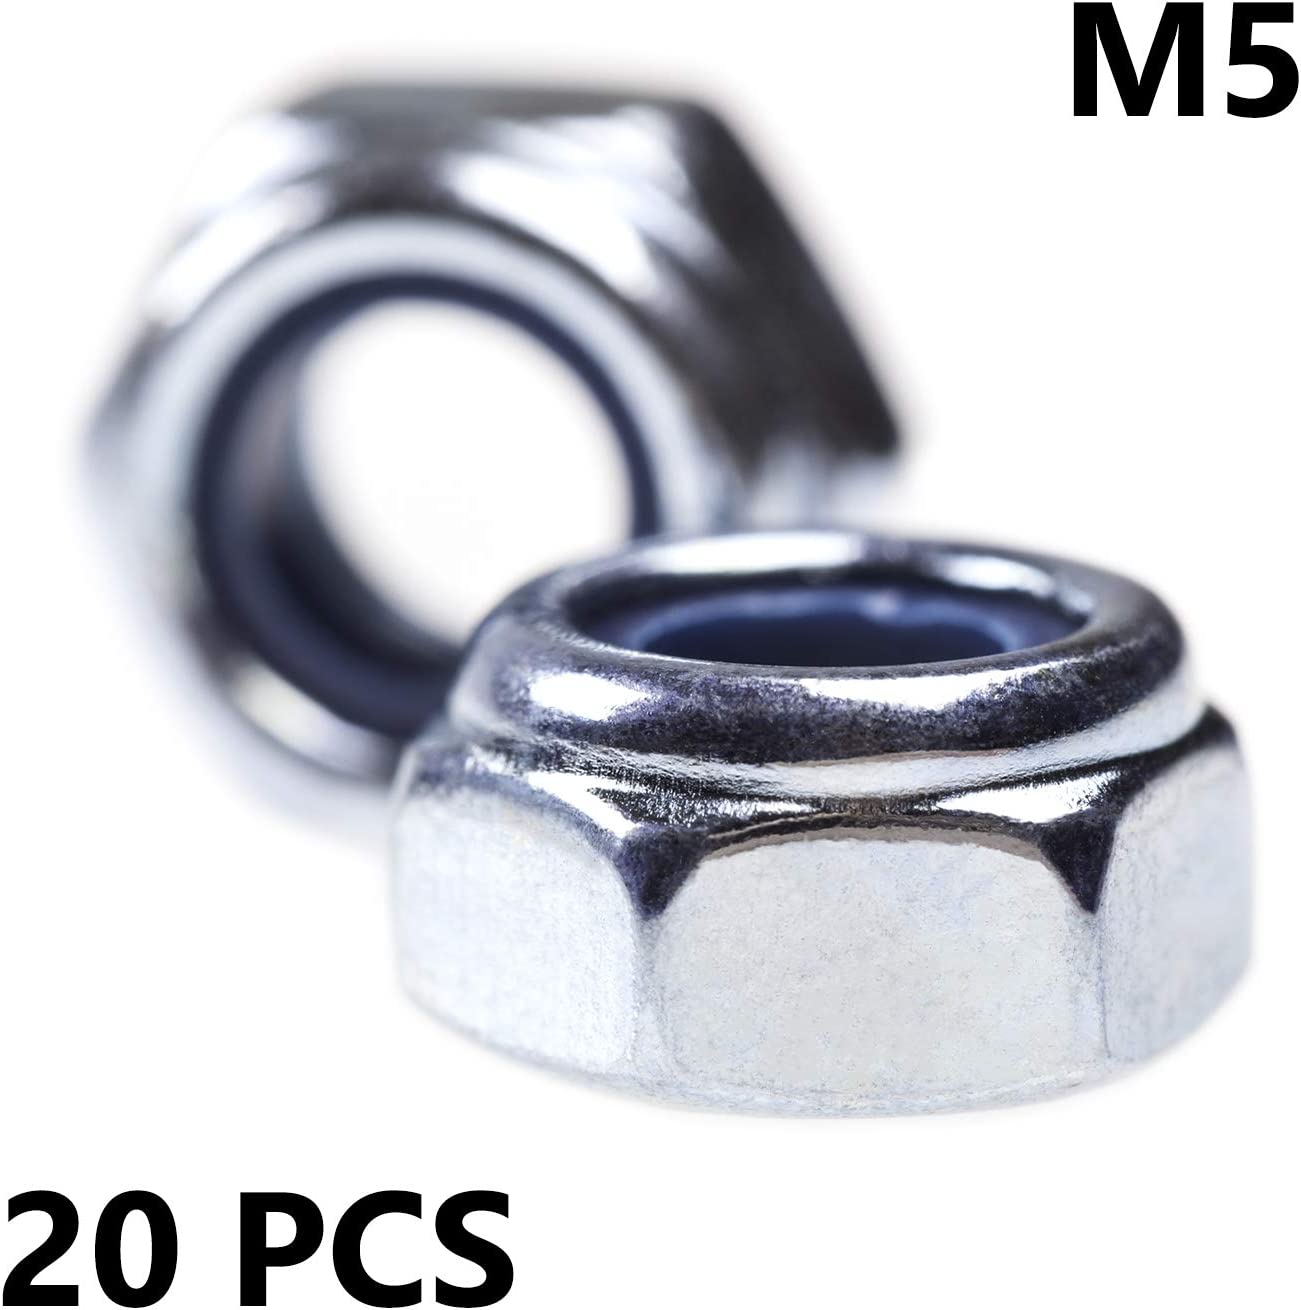 Nyloc Nut M5 5mm Nylock Nuts Nylon Insert Lock Hex Self Locking Nuts Bright Zinc Plated 20 Pack Pieces Bolt Base Threaded Insert Assortment Head Bolts High Tensile Fasteners